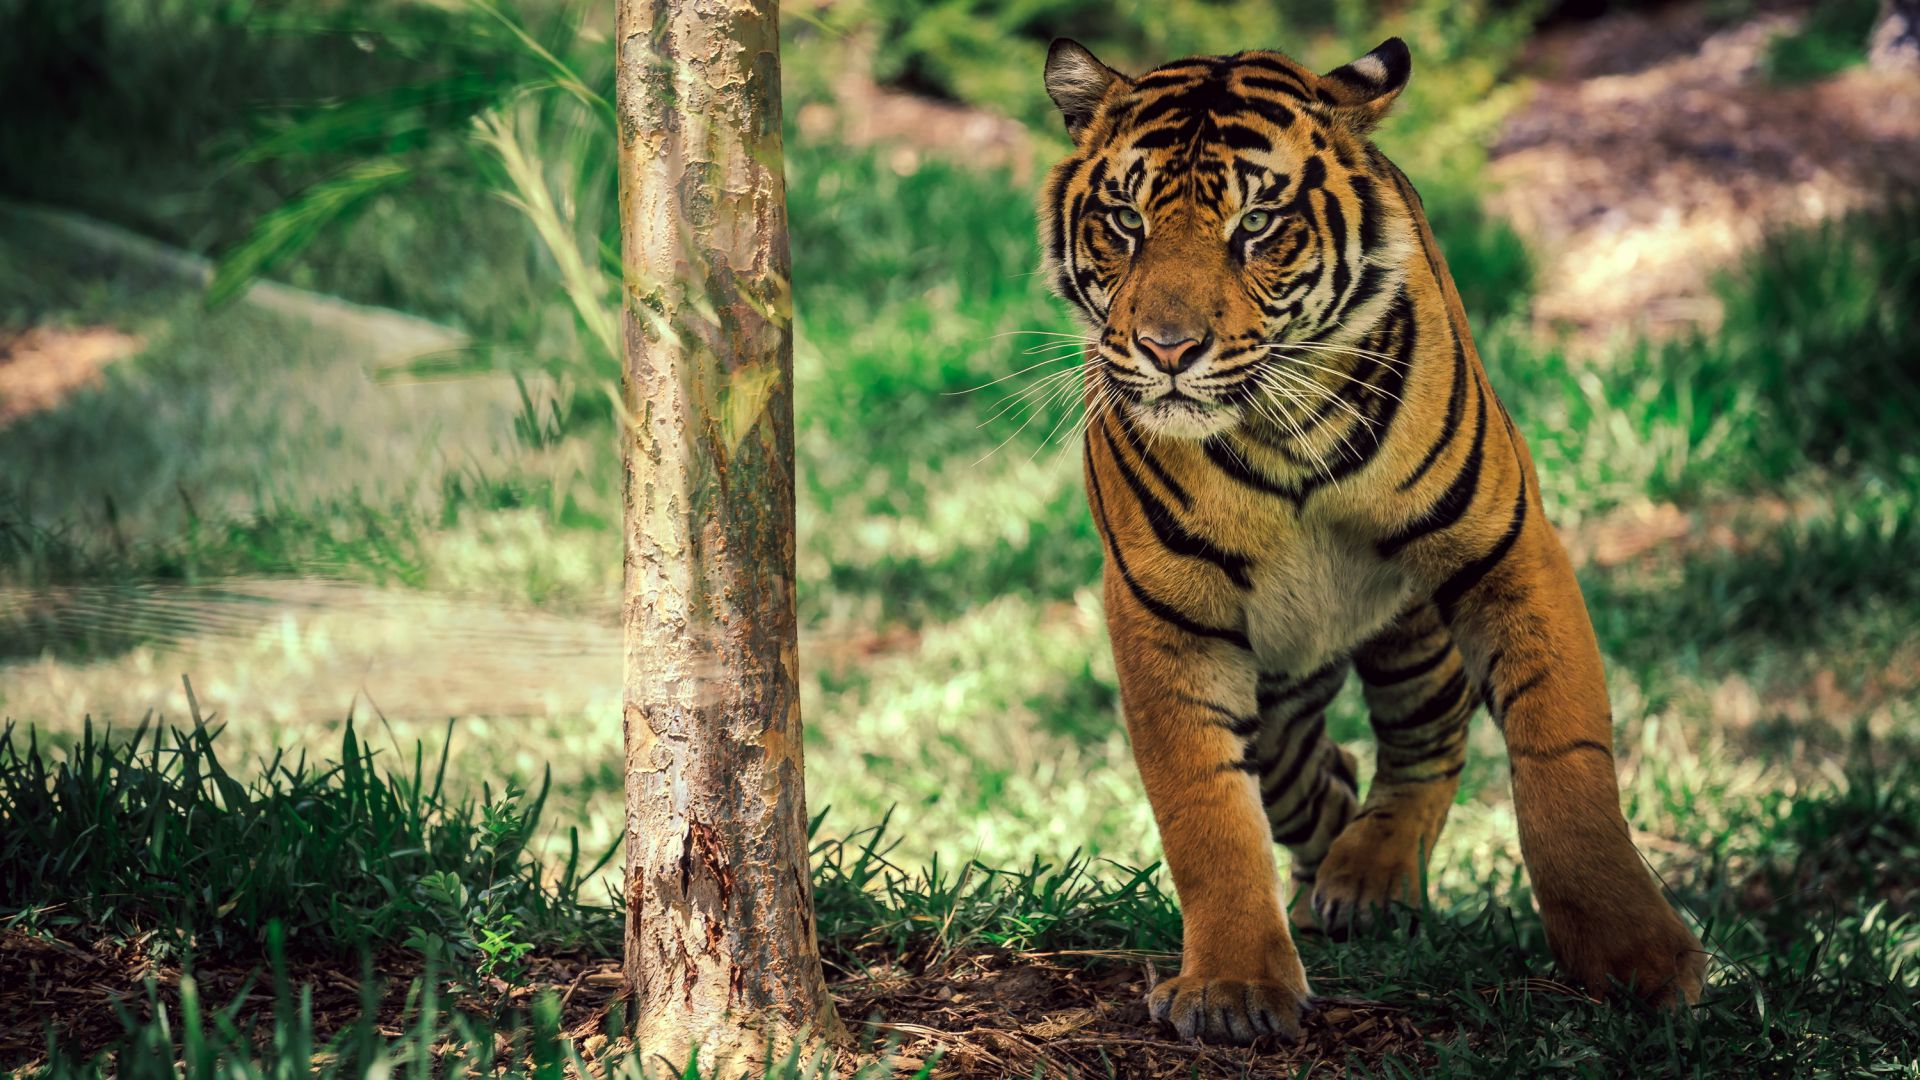 Bengal tiger wallpaper widescreen